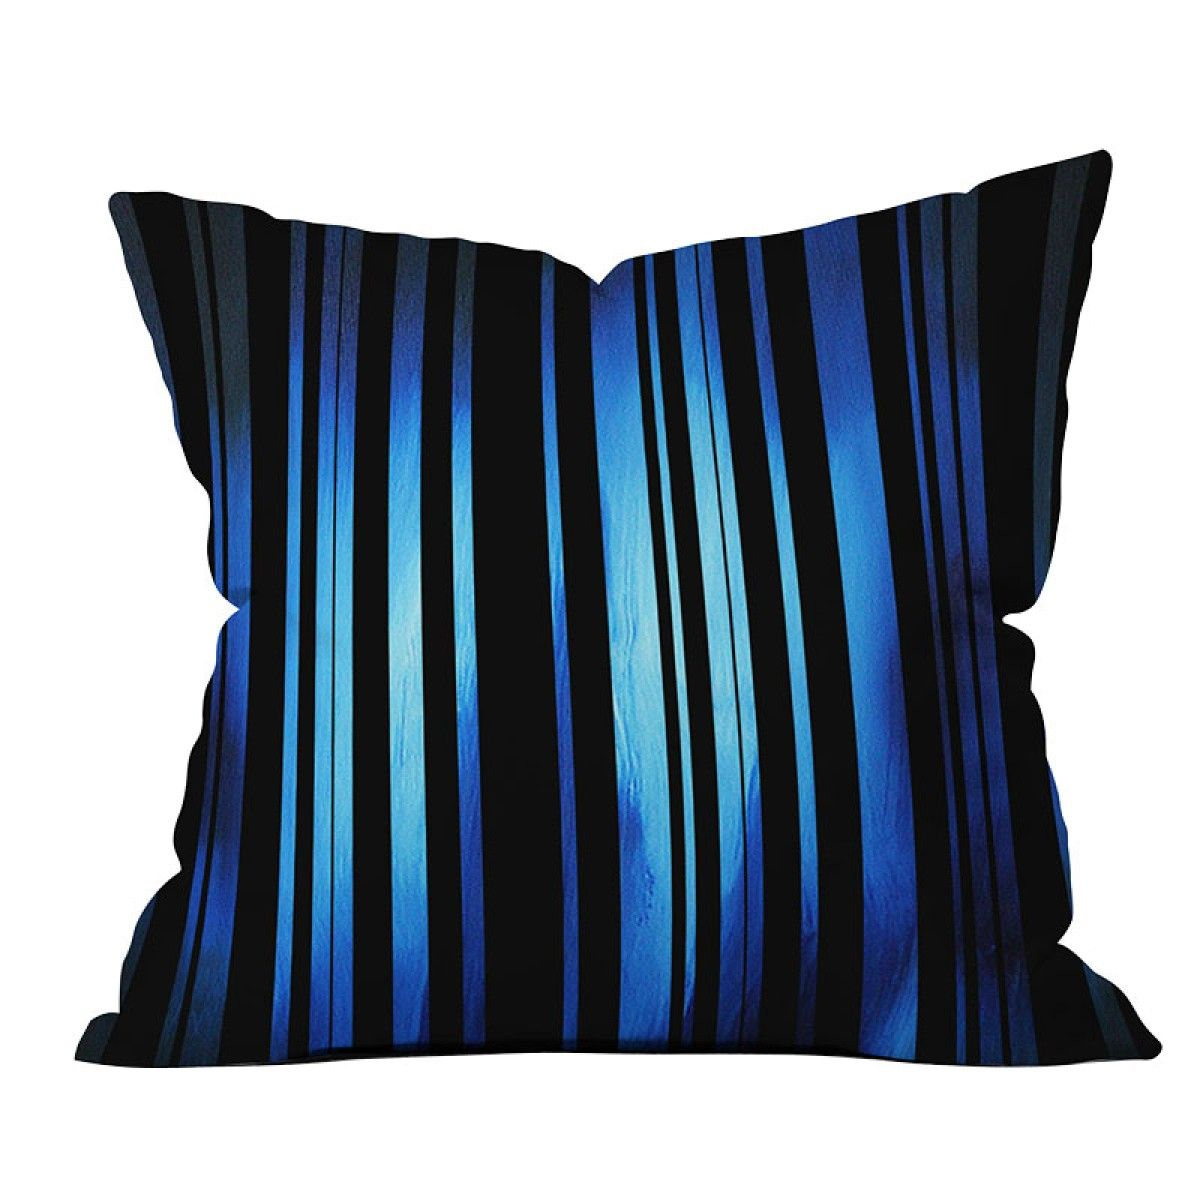 pillows fashion full all cushion throw size bling black of turquoise pillow uncategorized wonderful pu sofas for in with finest impressive inside cover pink leather decorative modern silver